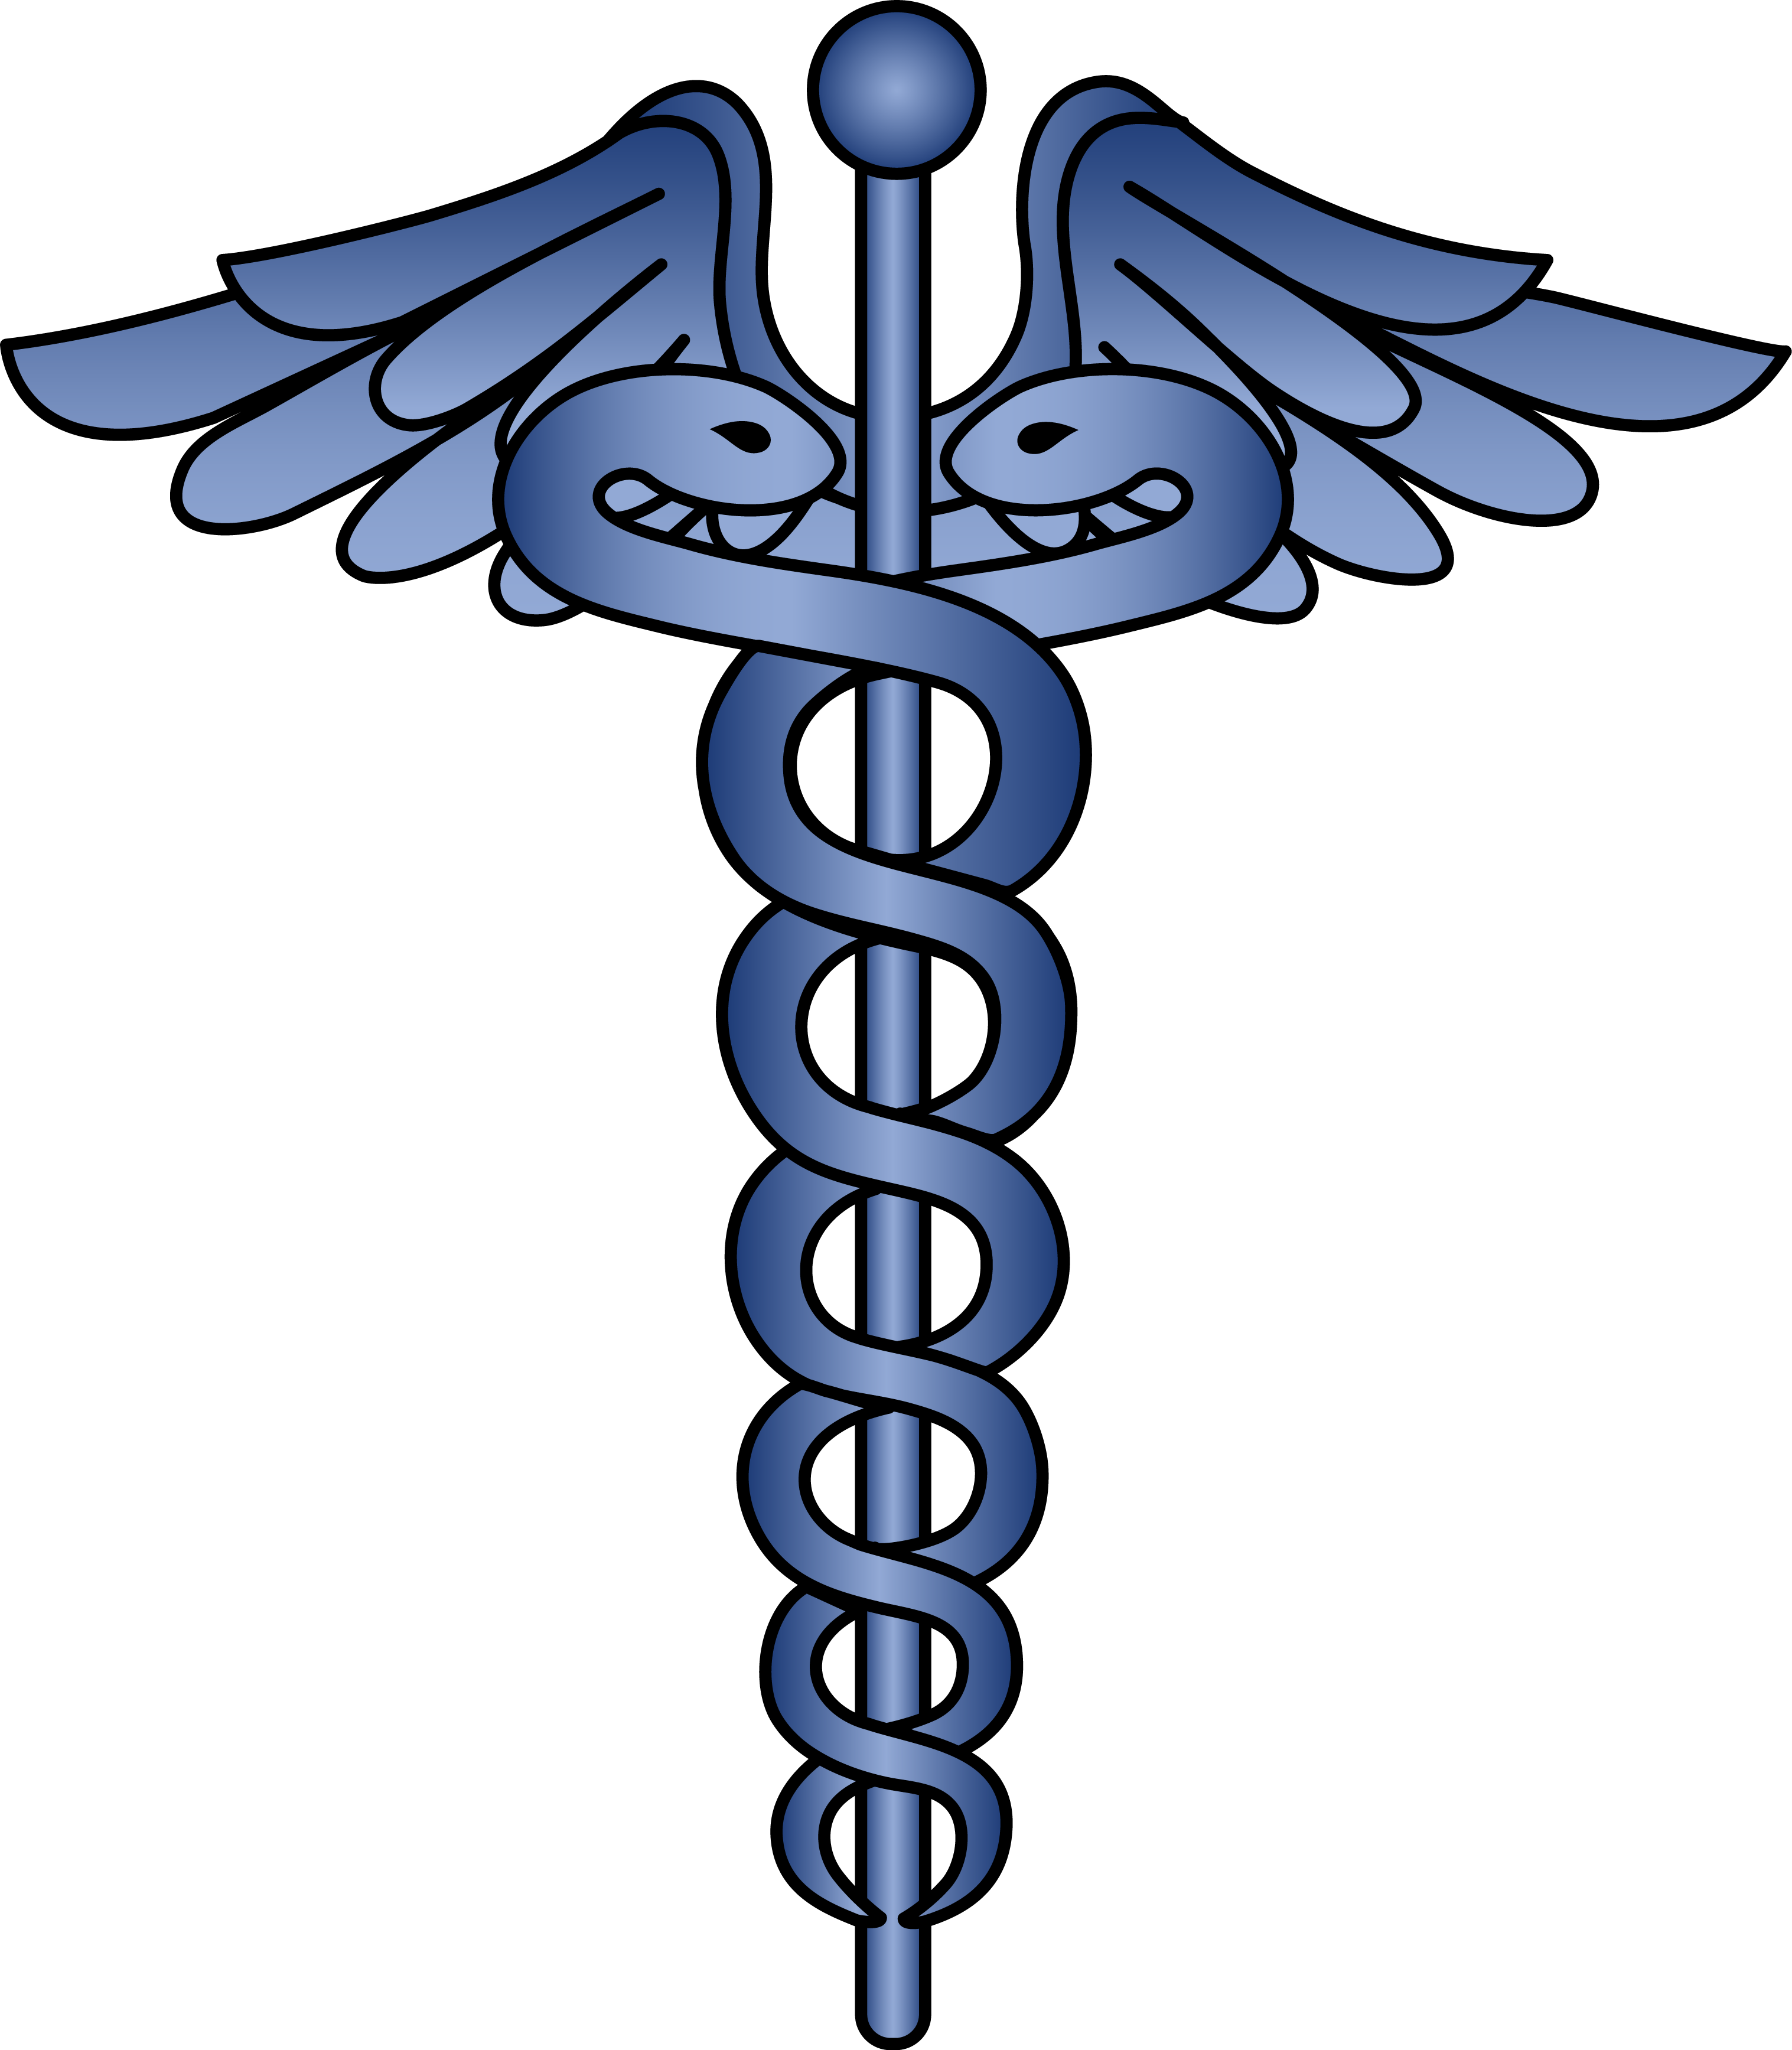 health legal caduceus logo blue clip art sweet clip art rh m sweetclipart com caduceus medical symbol clipart dental caduceus clipart